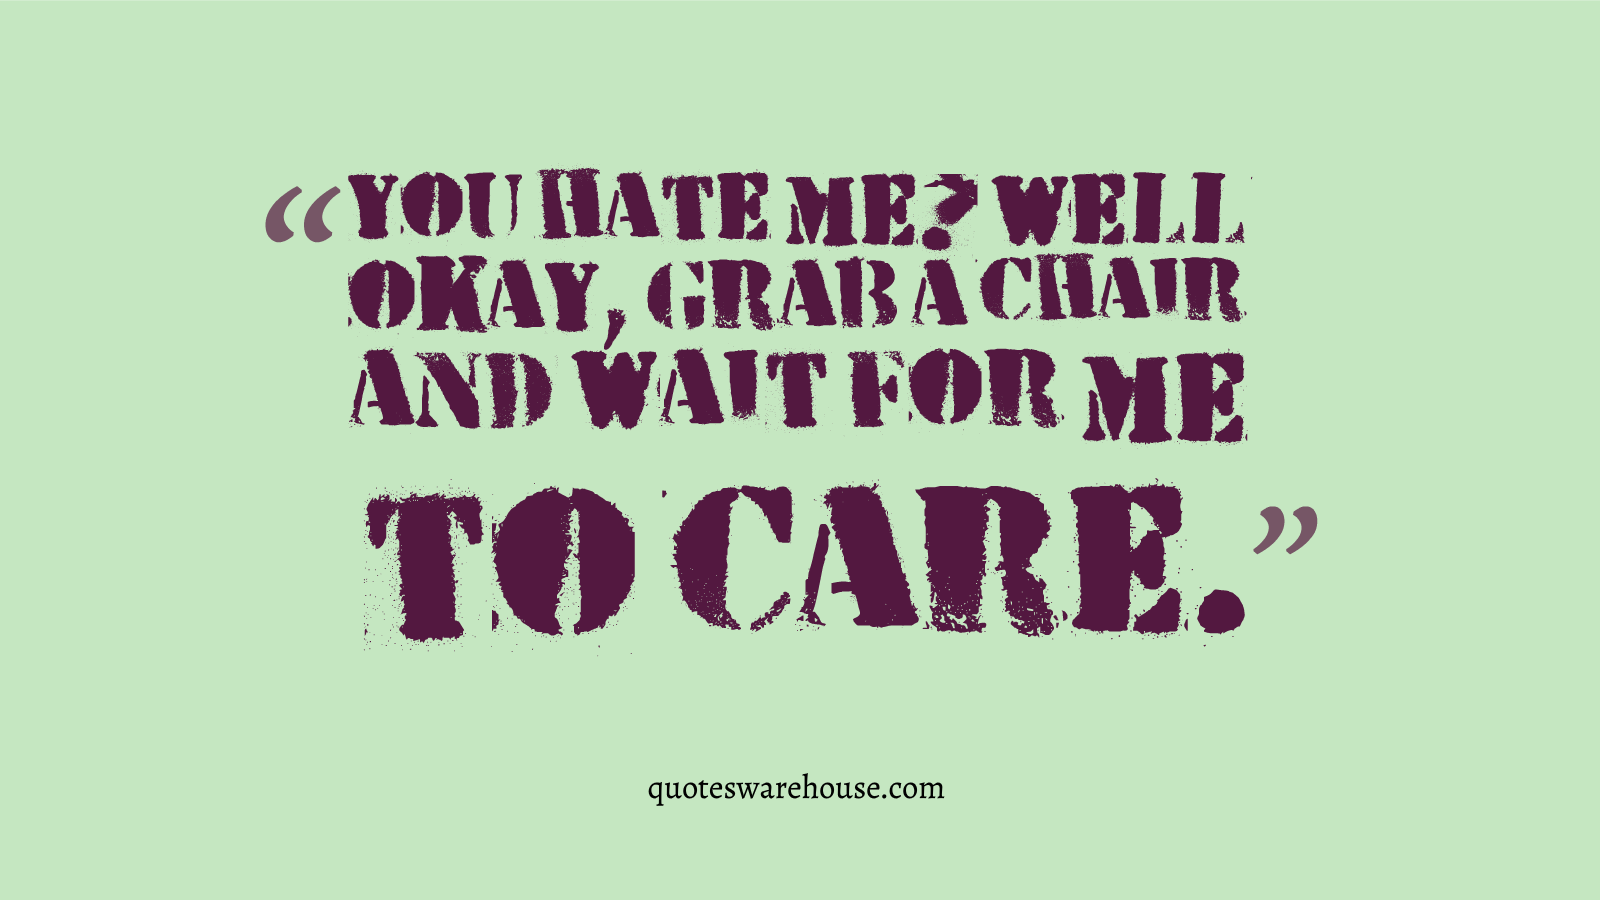 Hater Sayings Haters Quotes For Facebook Status Images For Hater